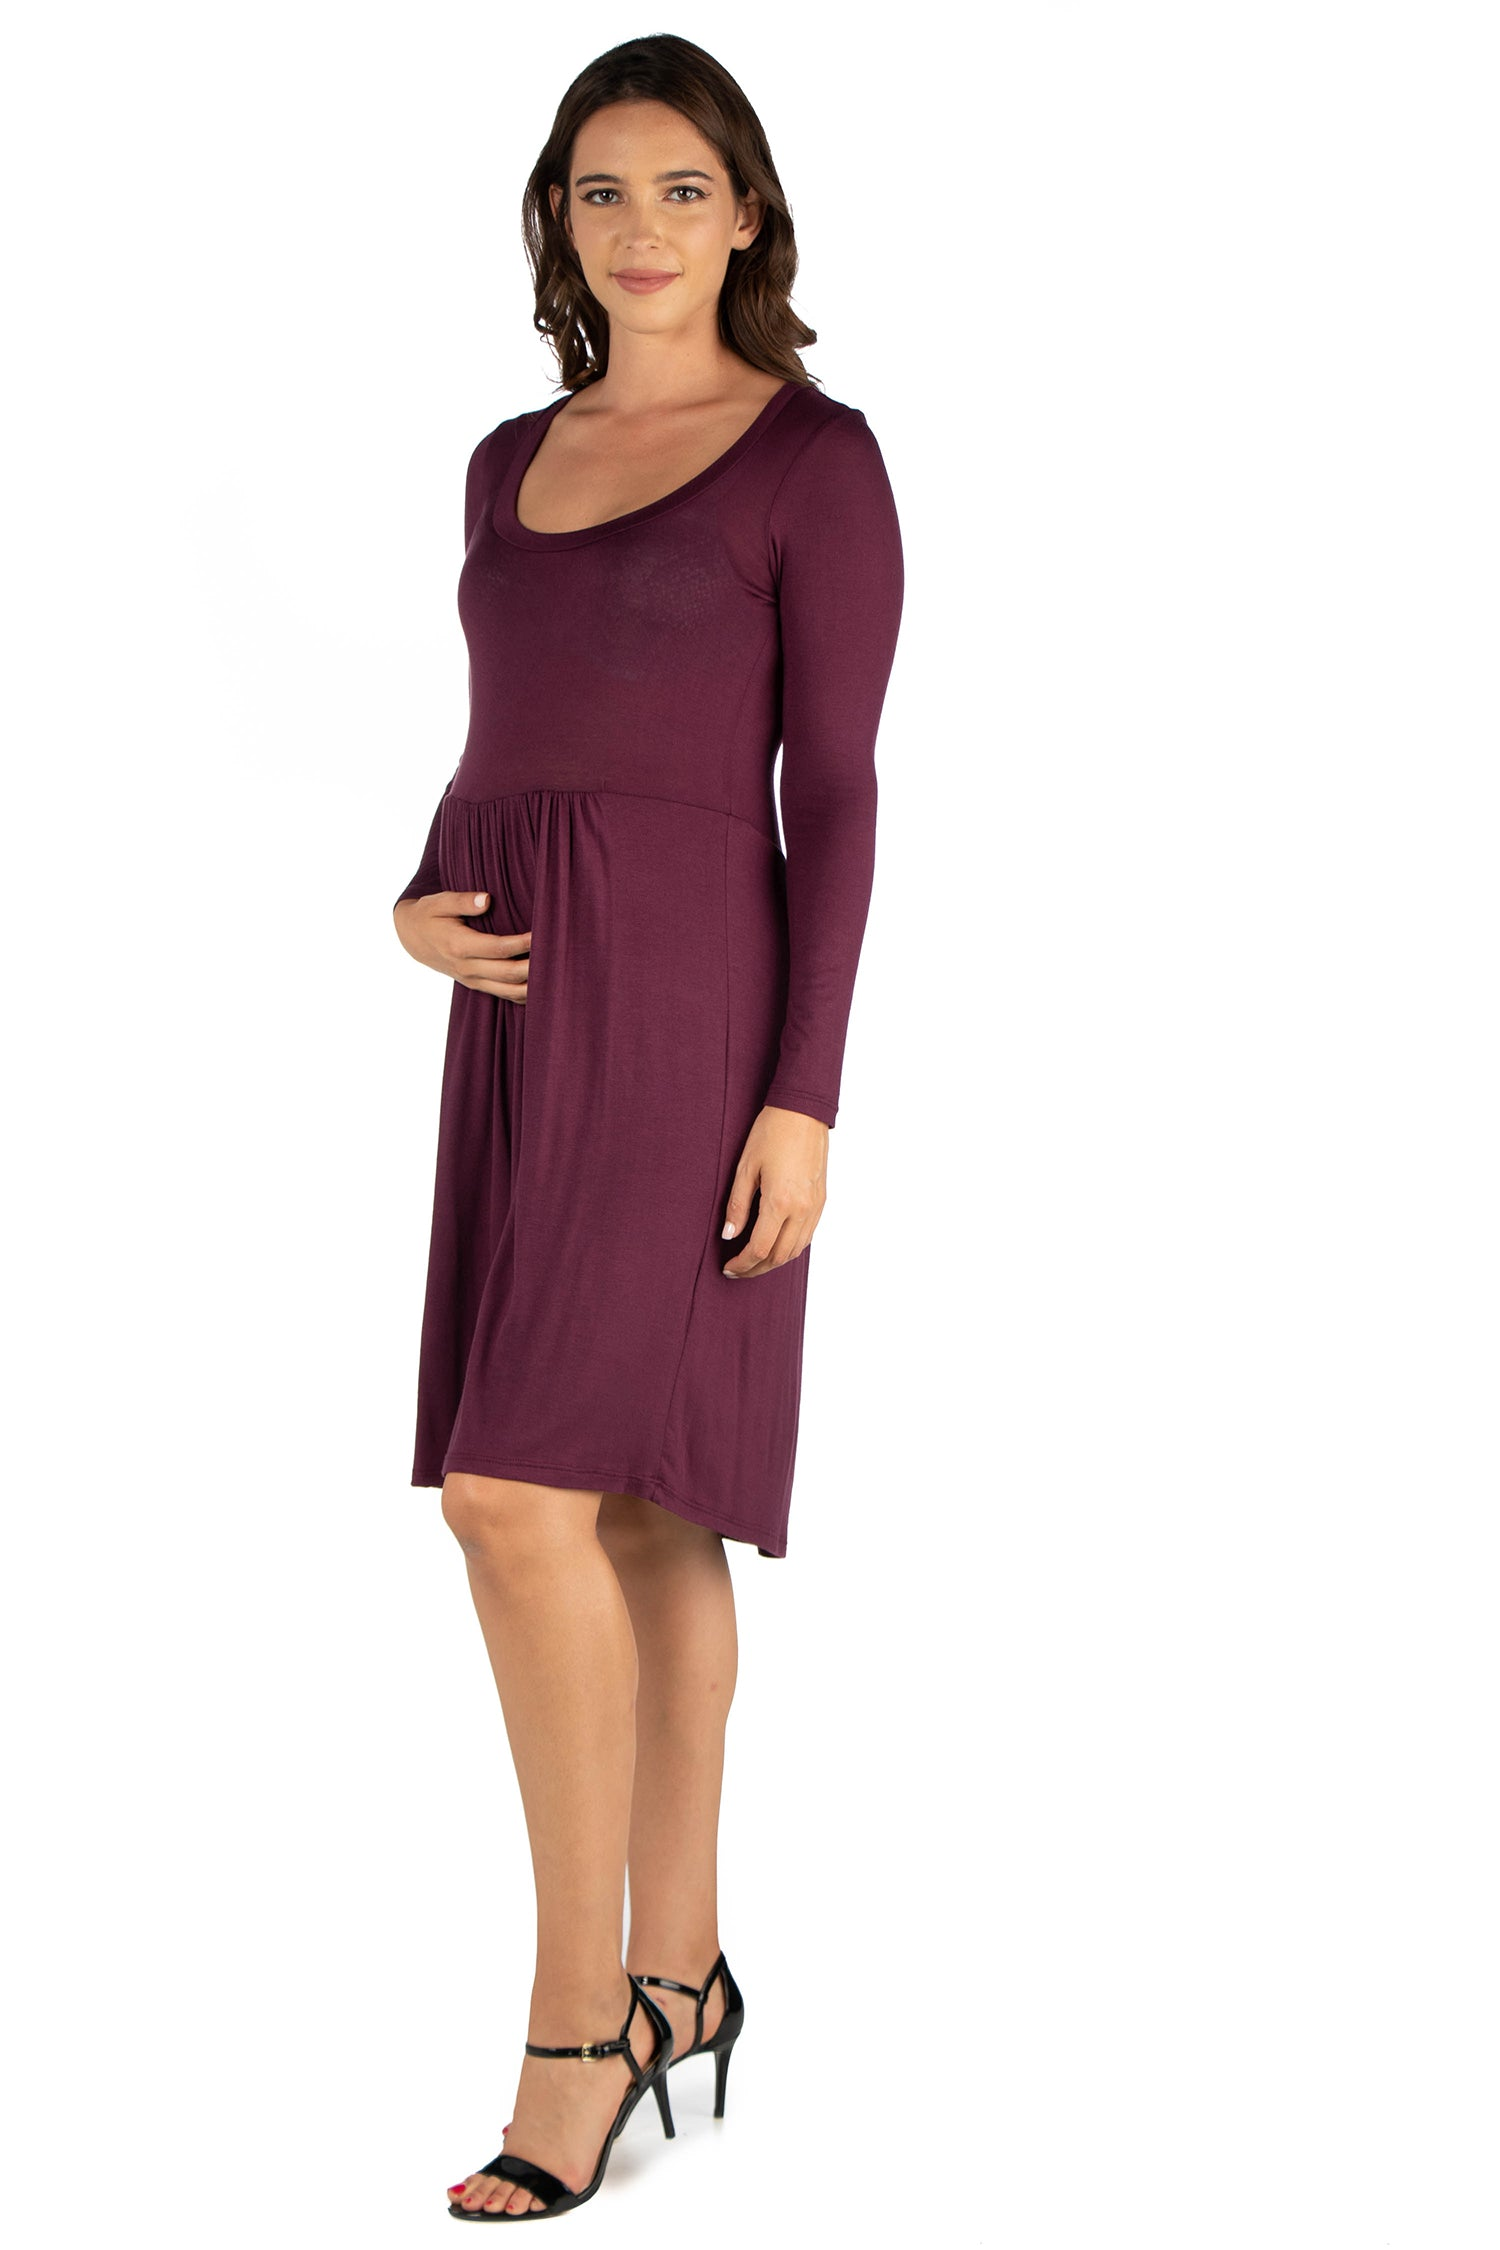 24seven Comfort Apparel Black Floral Print Long Sleeve Pleated Maternity Dress-DRESSES-24Seven Comfort Apparel-PLUM-1X-24/7 Comfort Apparel